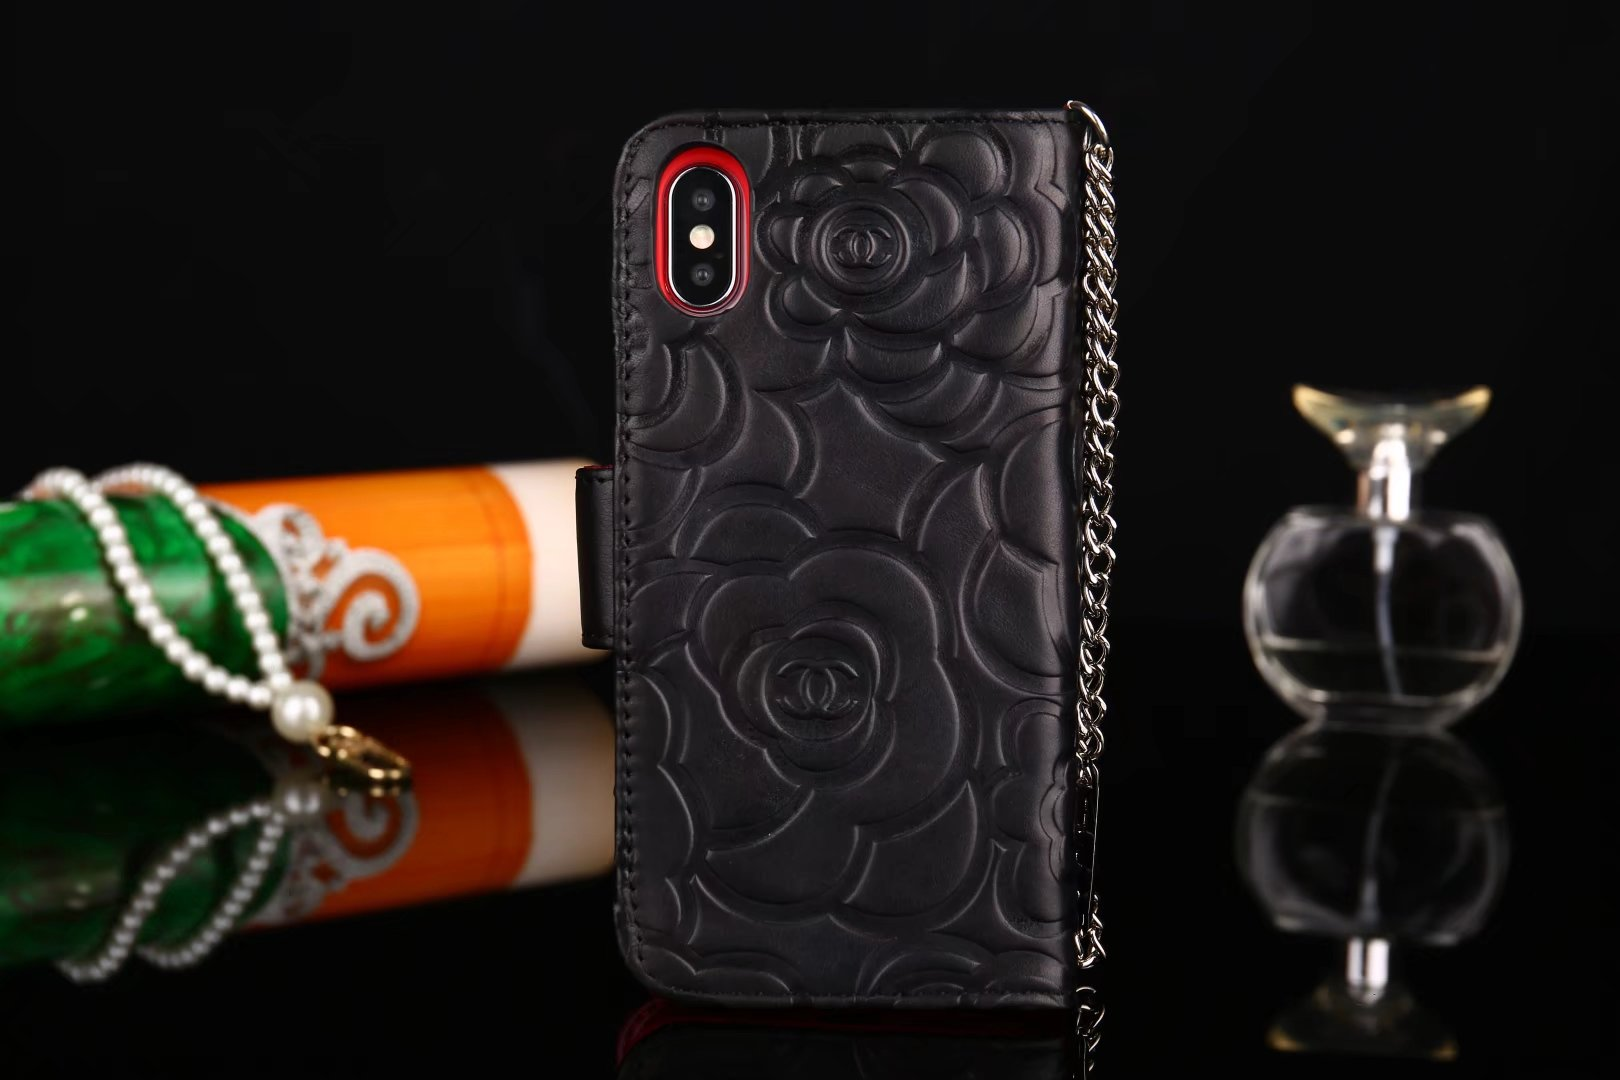 best case for iphone X iphone X phone covers Chanel iPhone X case cool phone cases for iphone 6 iphone 8 best covers design iphone cover iphone 8 full cover case apple iphone 6 cases and covers best iphone cases 6